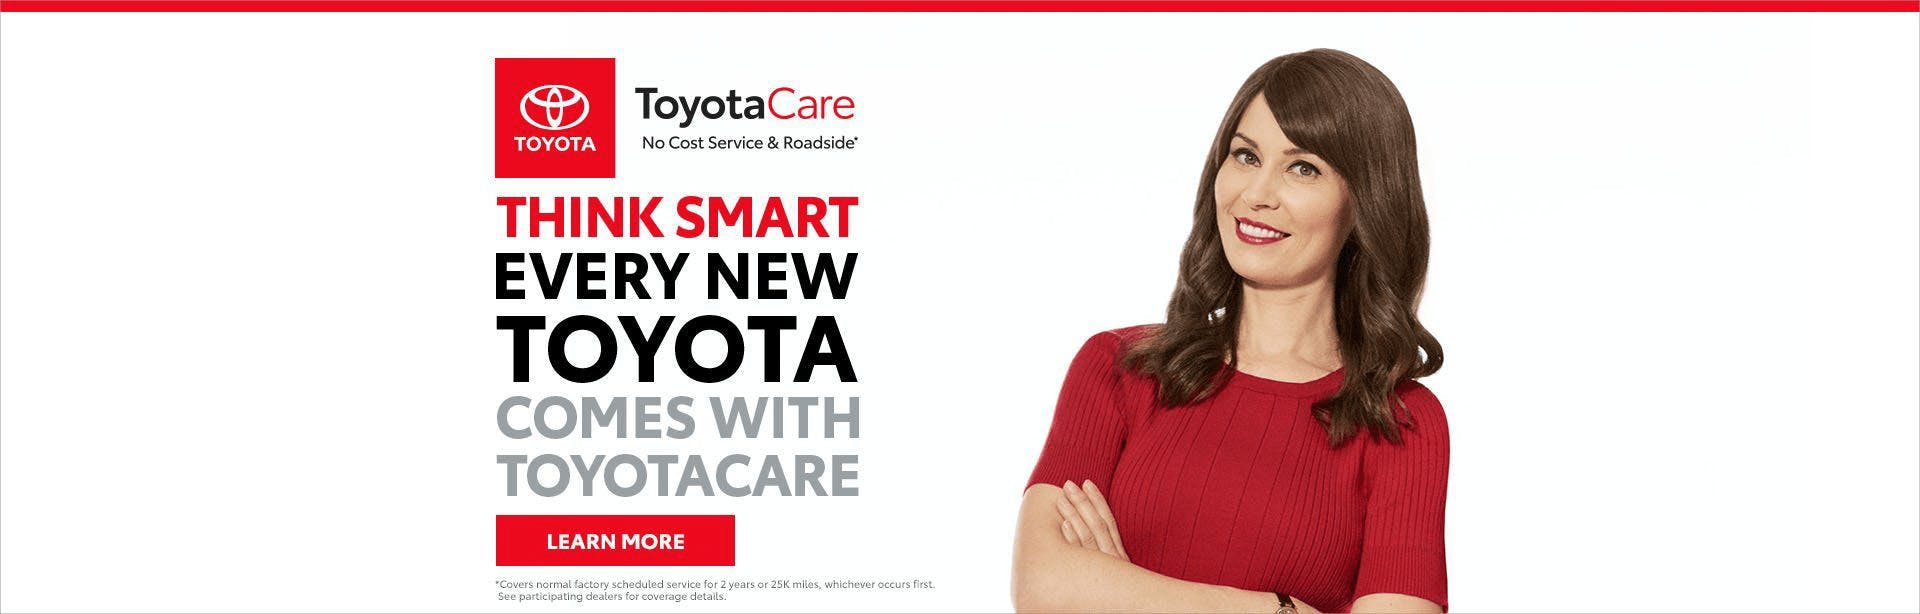 toyota think smart, toyota car - banner - south hills toyota